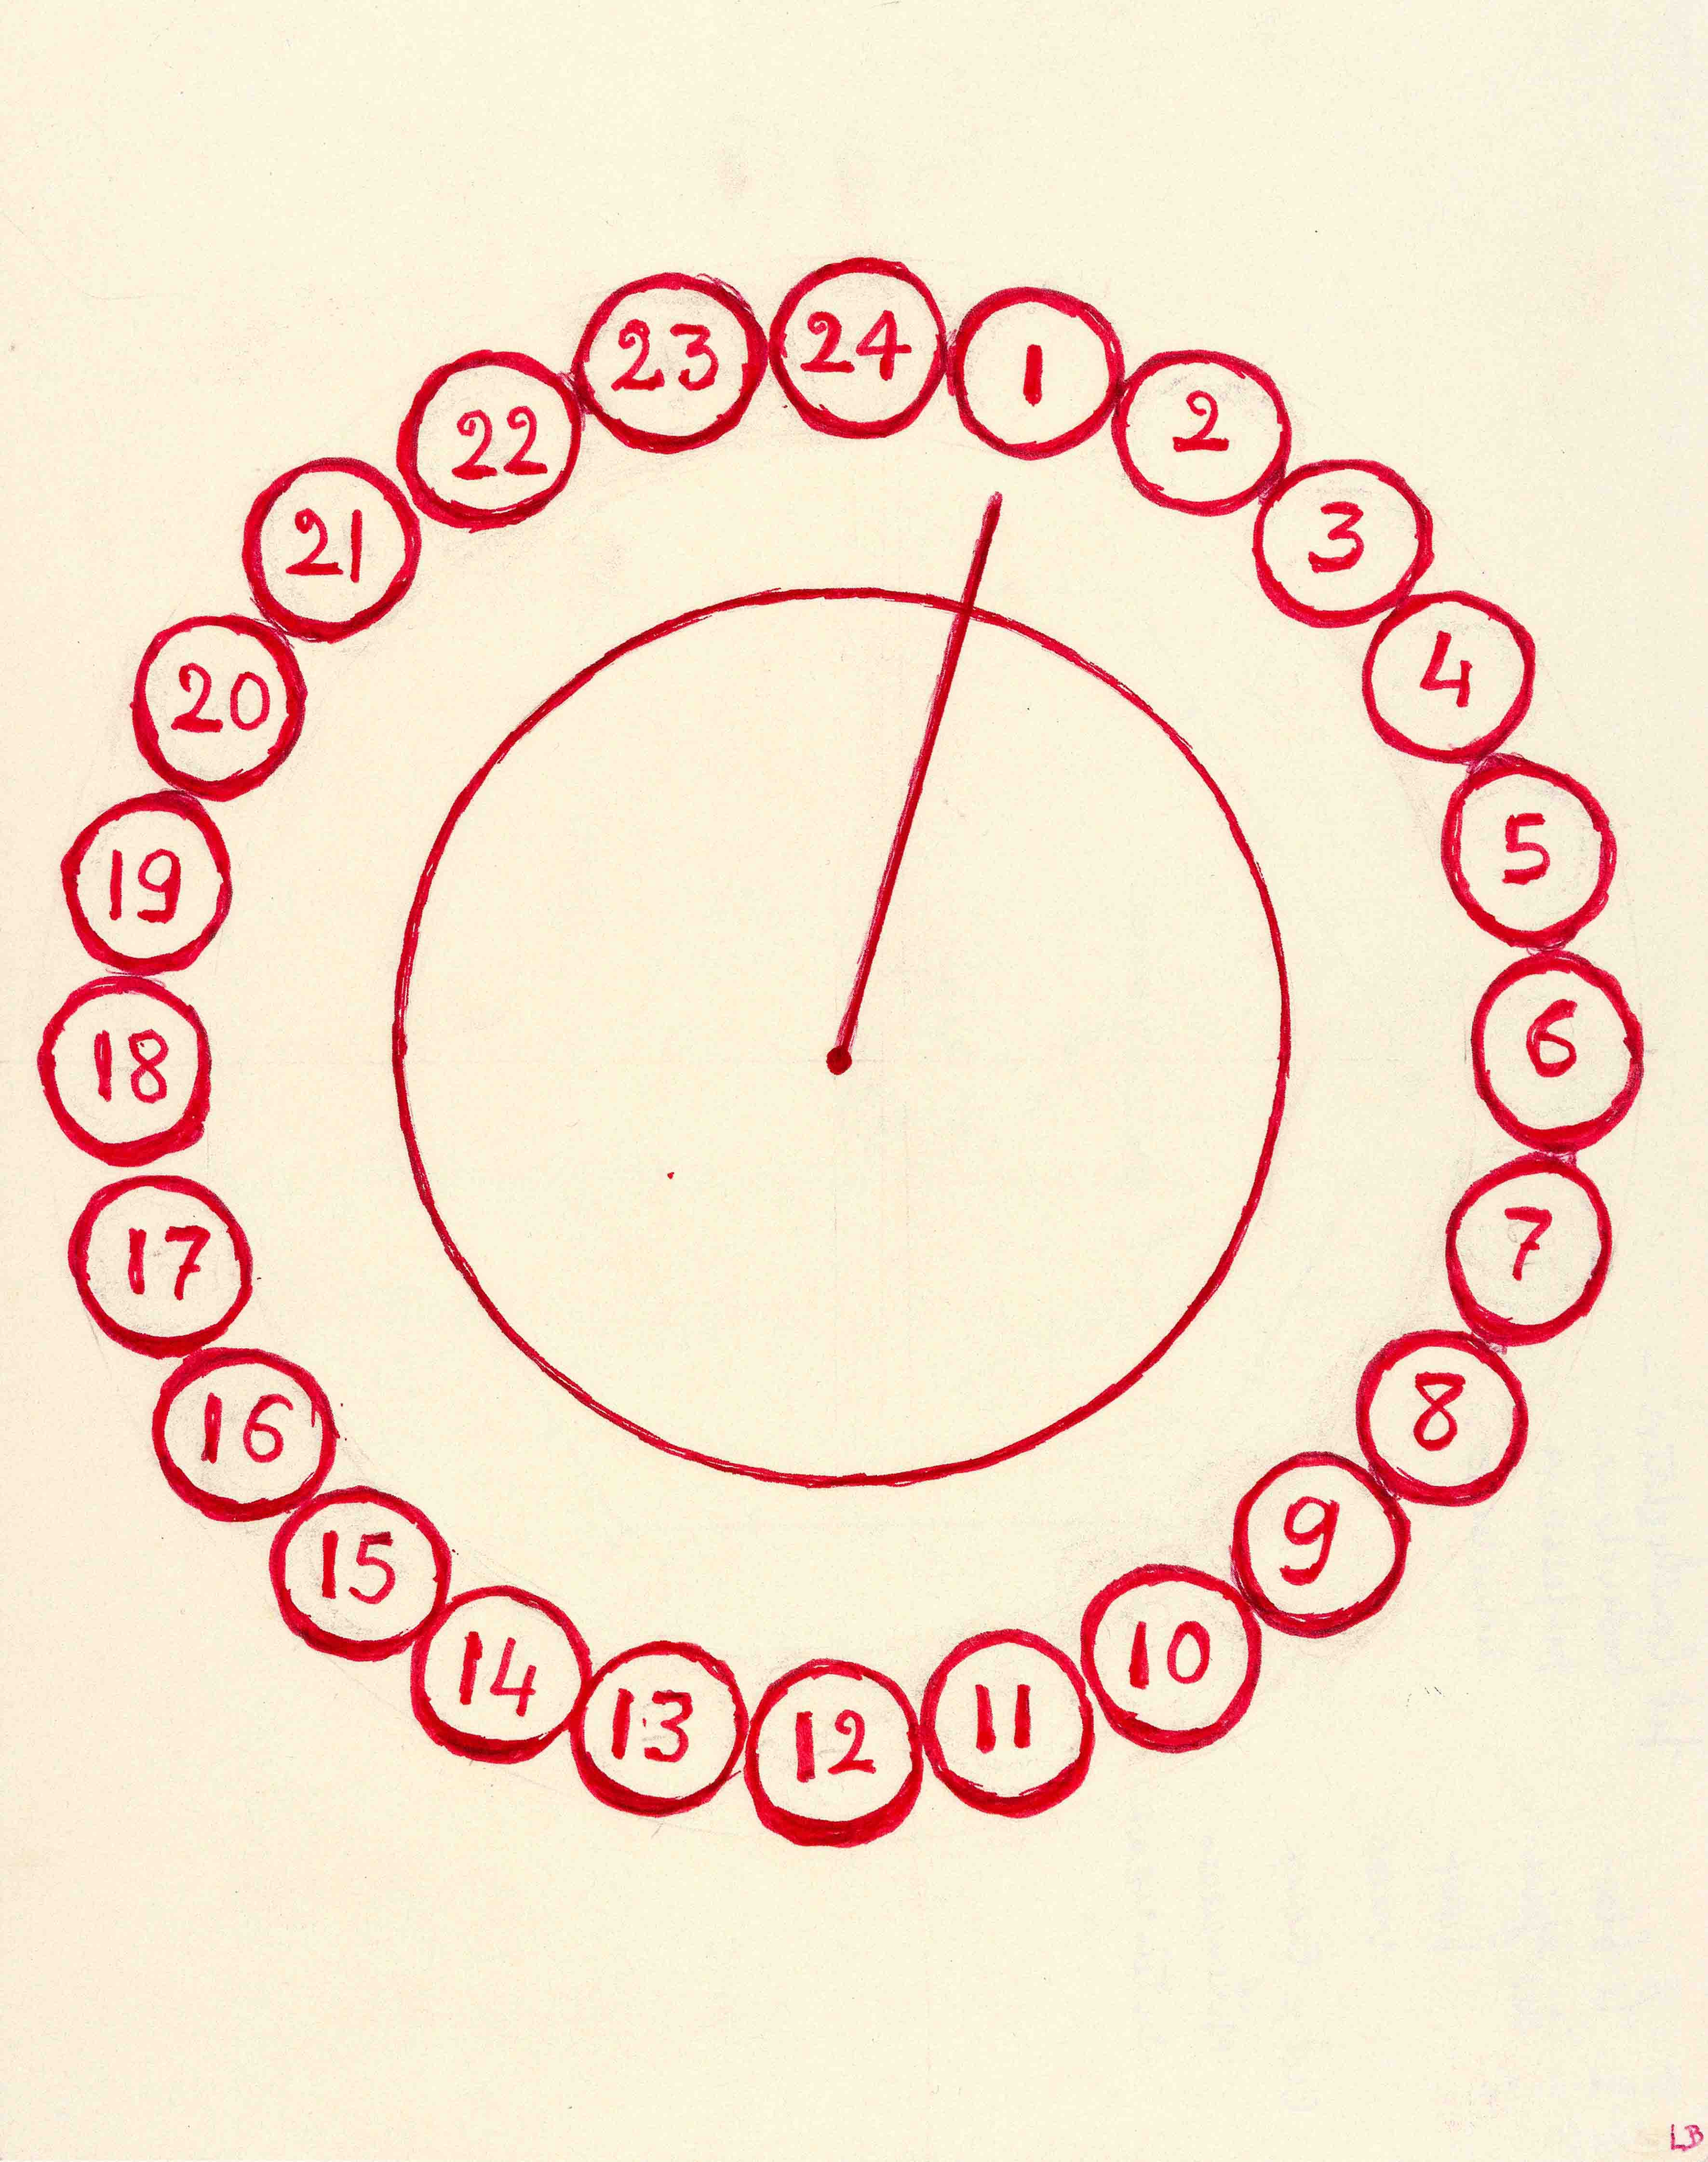 Louise Bourgeois: Insomnia Drawings